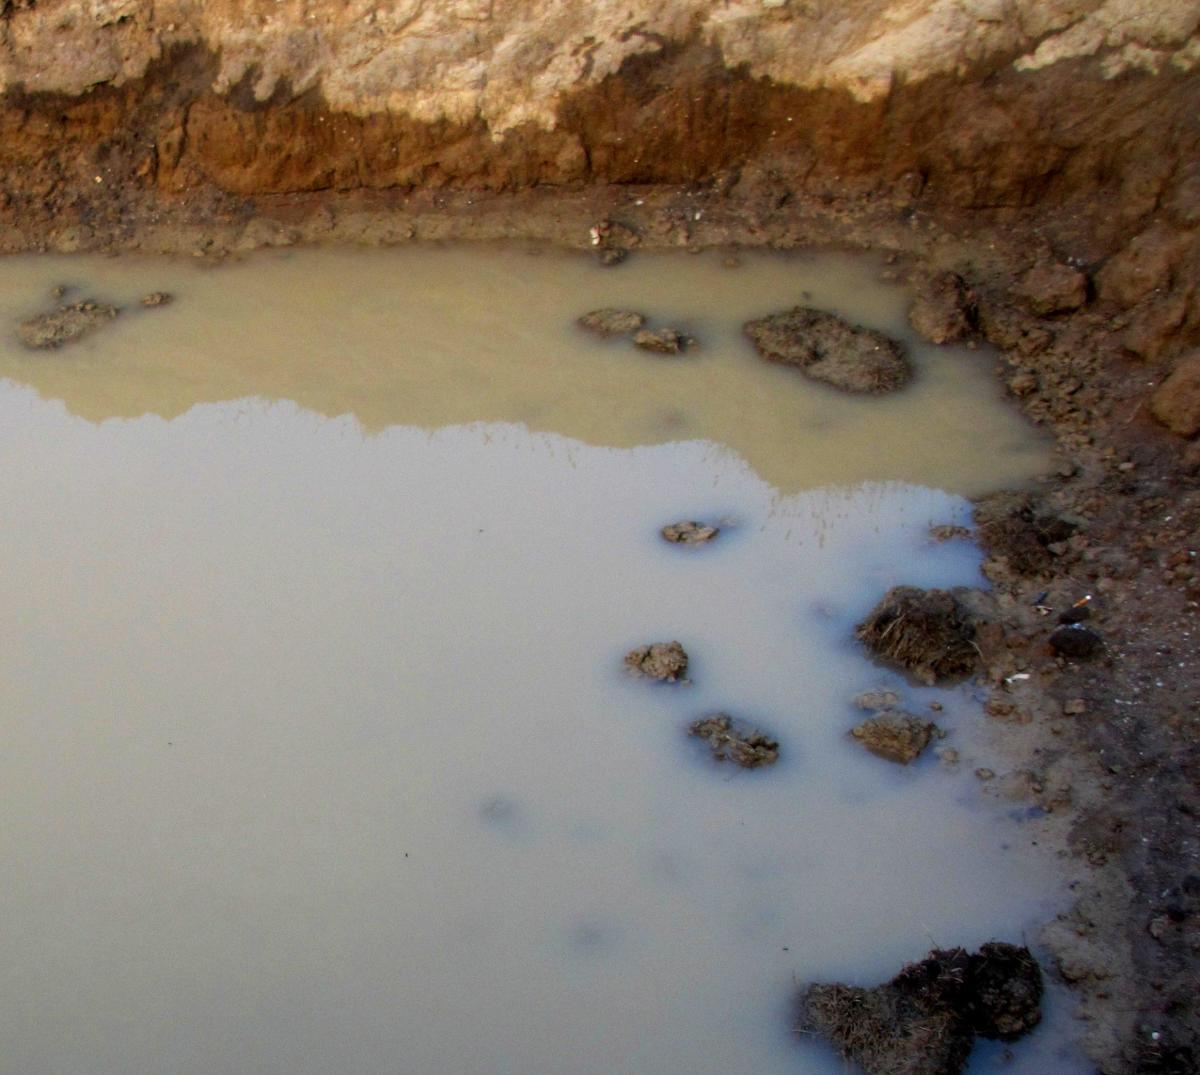 A large puddle of muddy water, illustrating what many people think of when they hear that life arose from a primordial soup of simple chemicals/compounds.